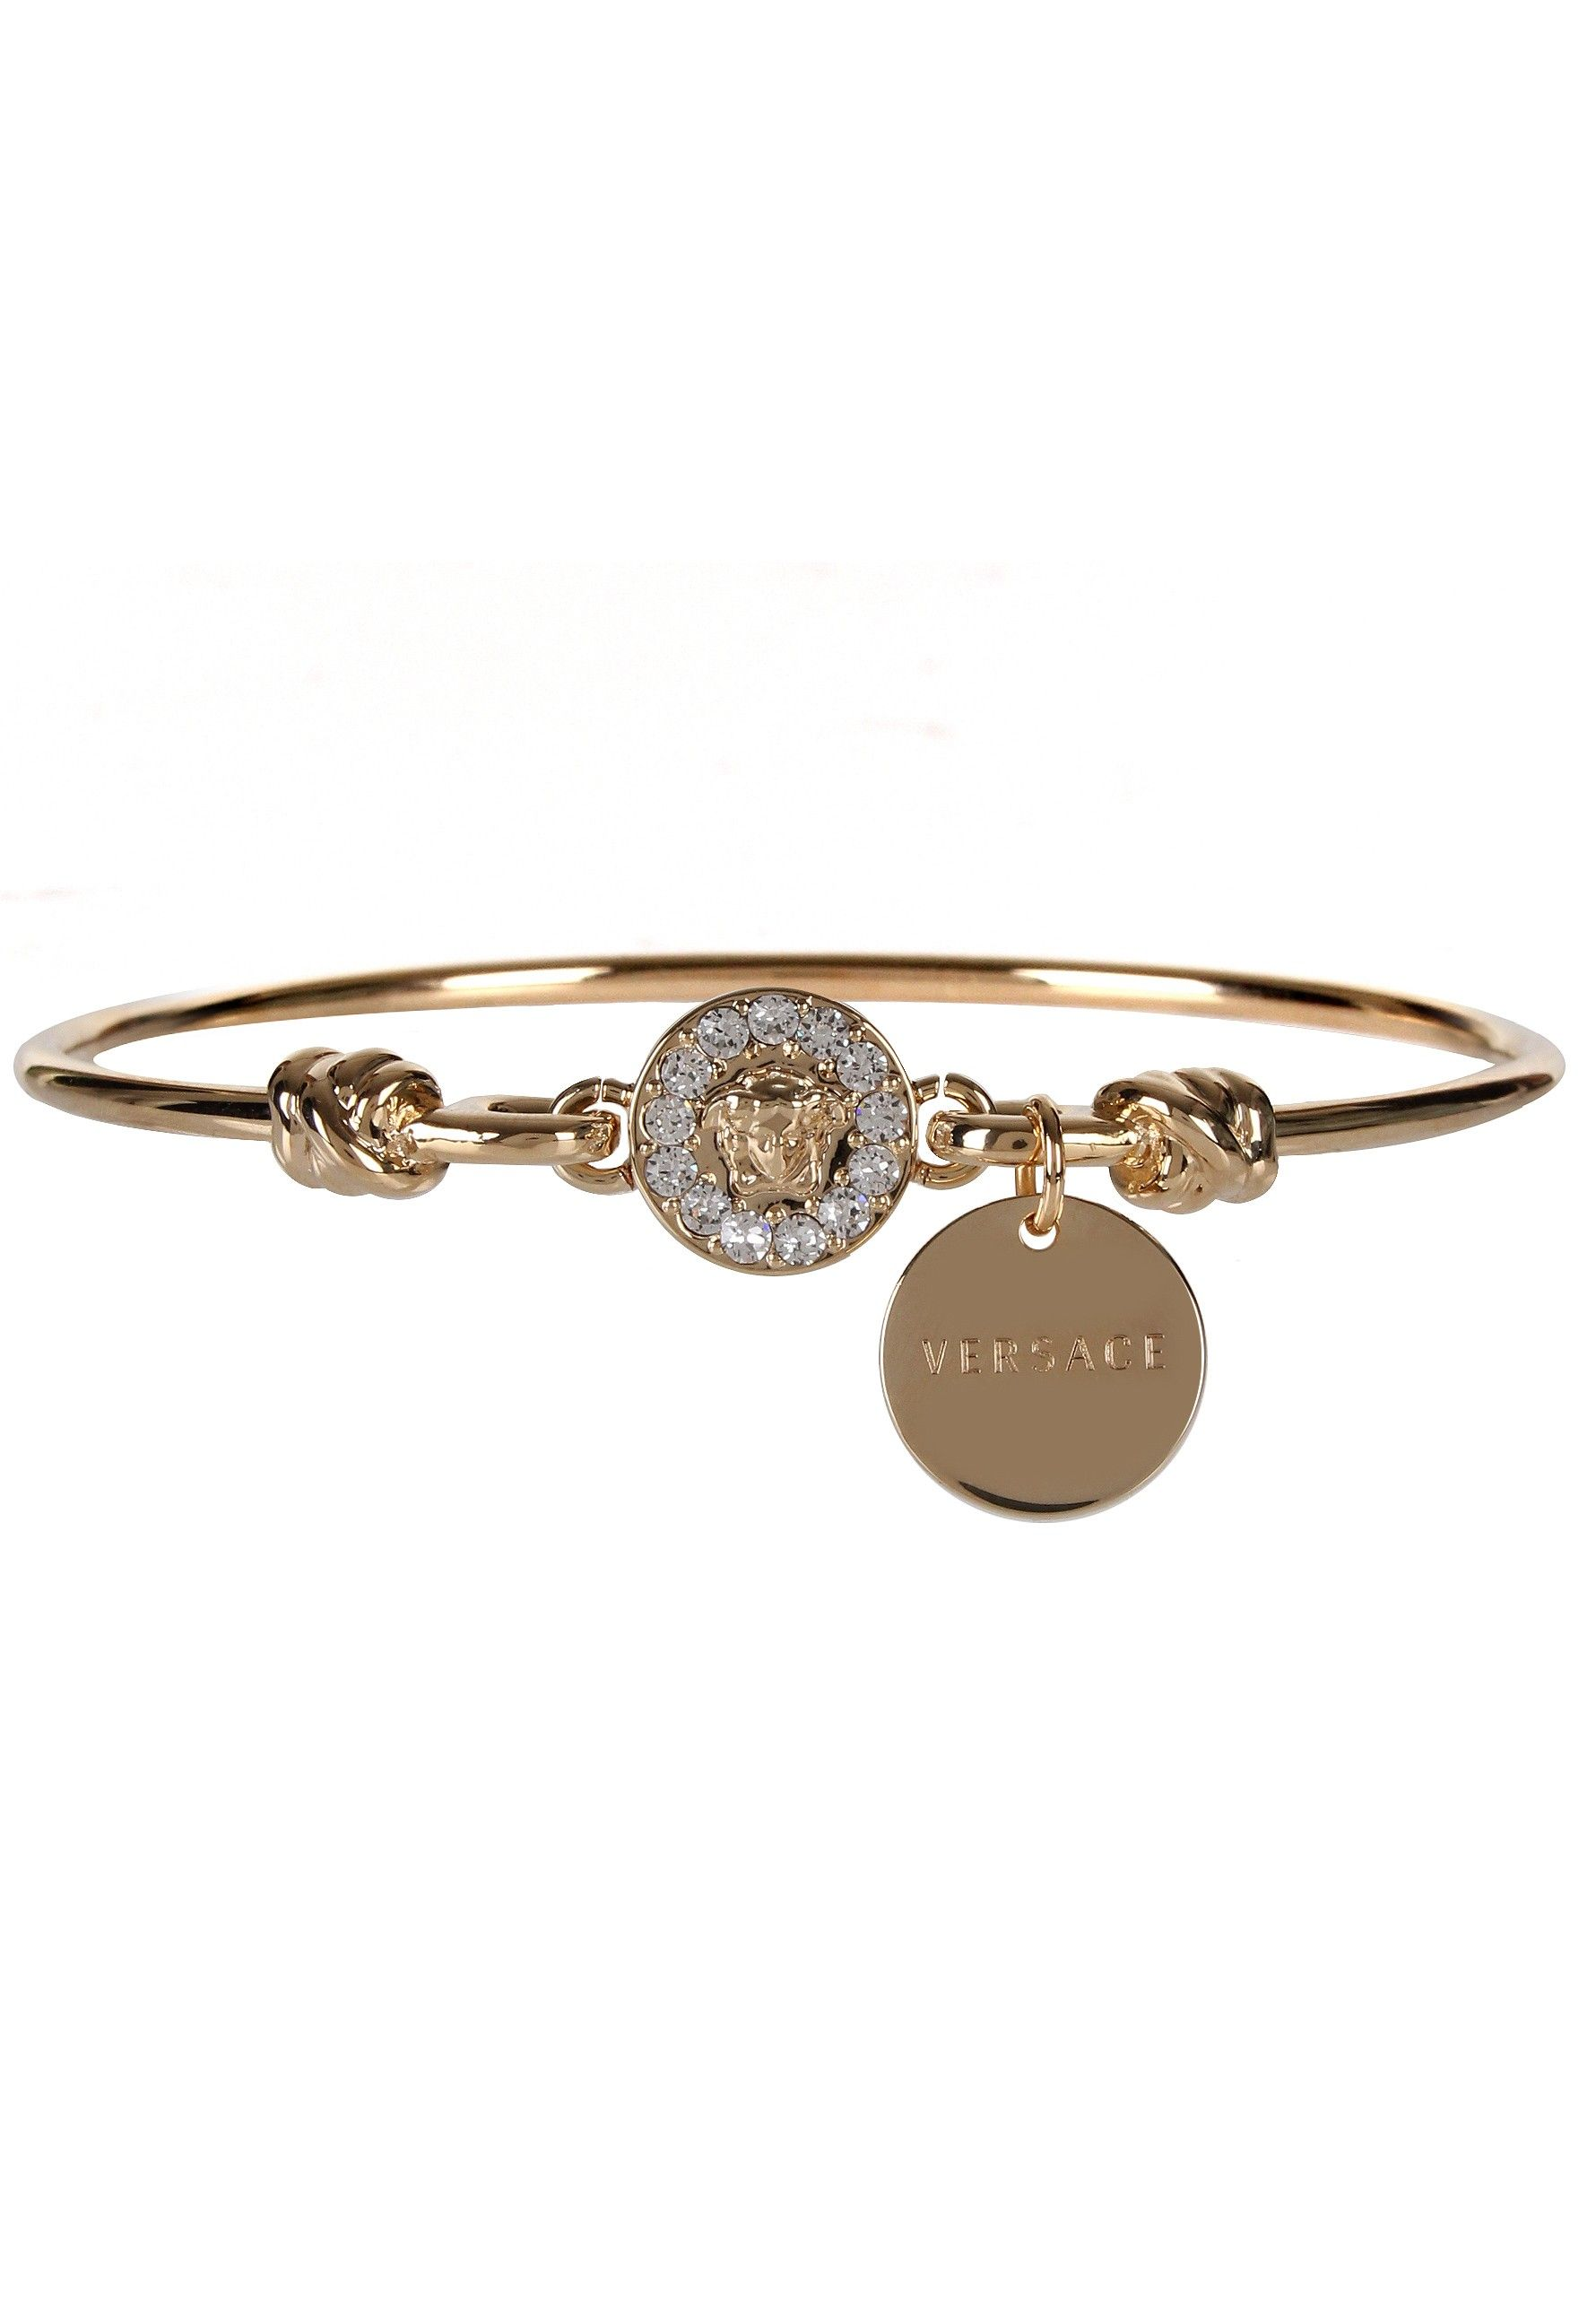 d09a86040a55 Versace Crystal Medusa Bracelet in gold. On a solid gold bangle